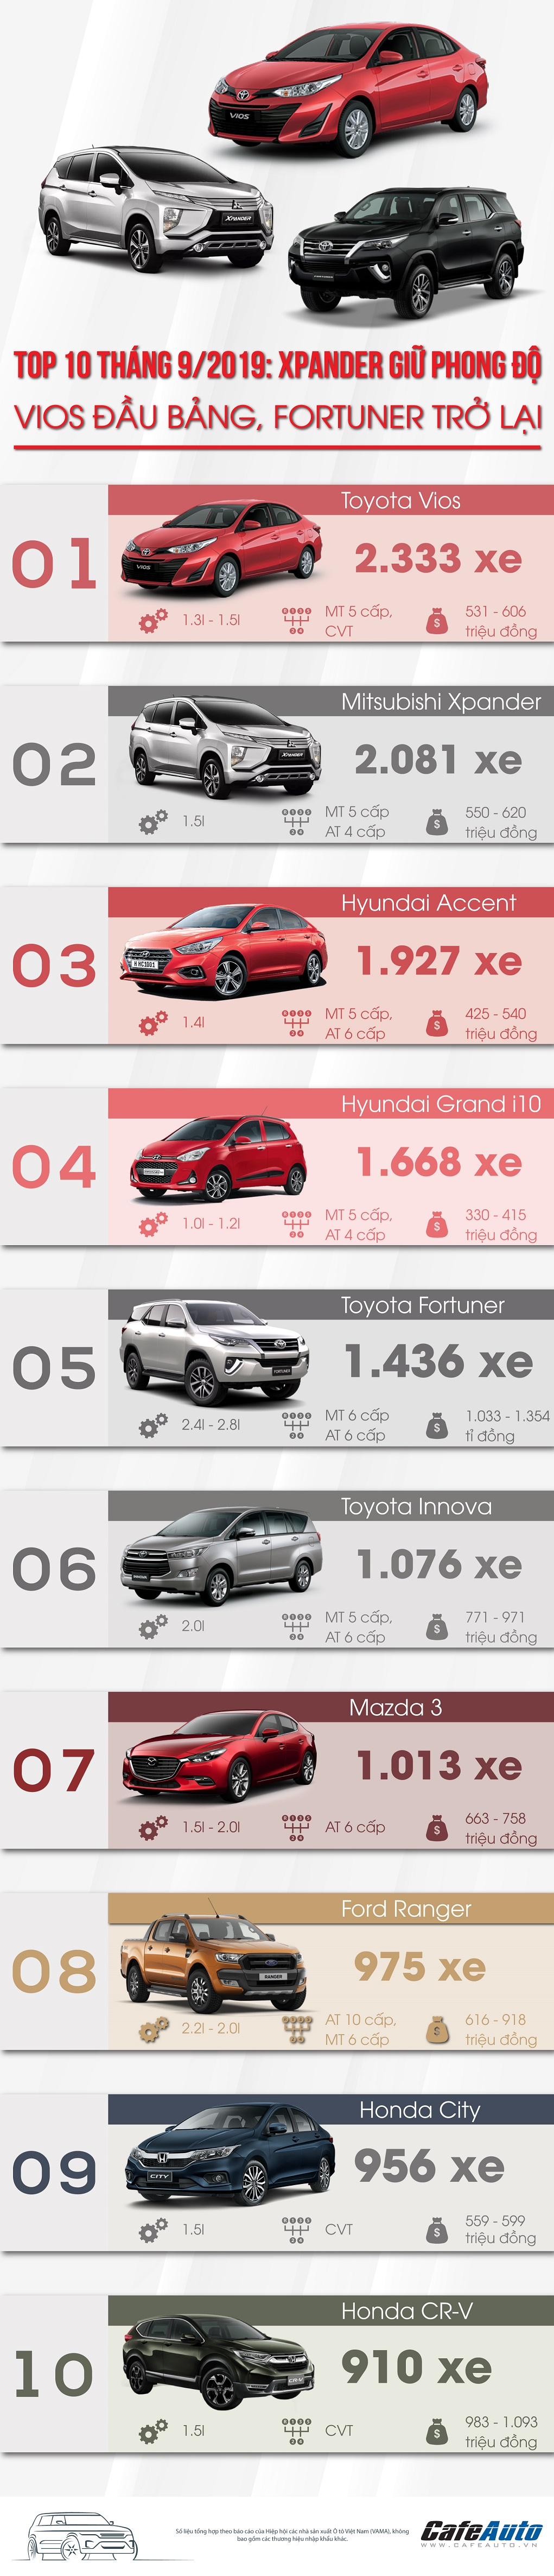 top-10-thang-9-2019-xpander-giu-phong-do-vios-dau-bang-fortuner-tro-lai